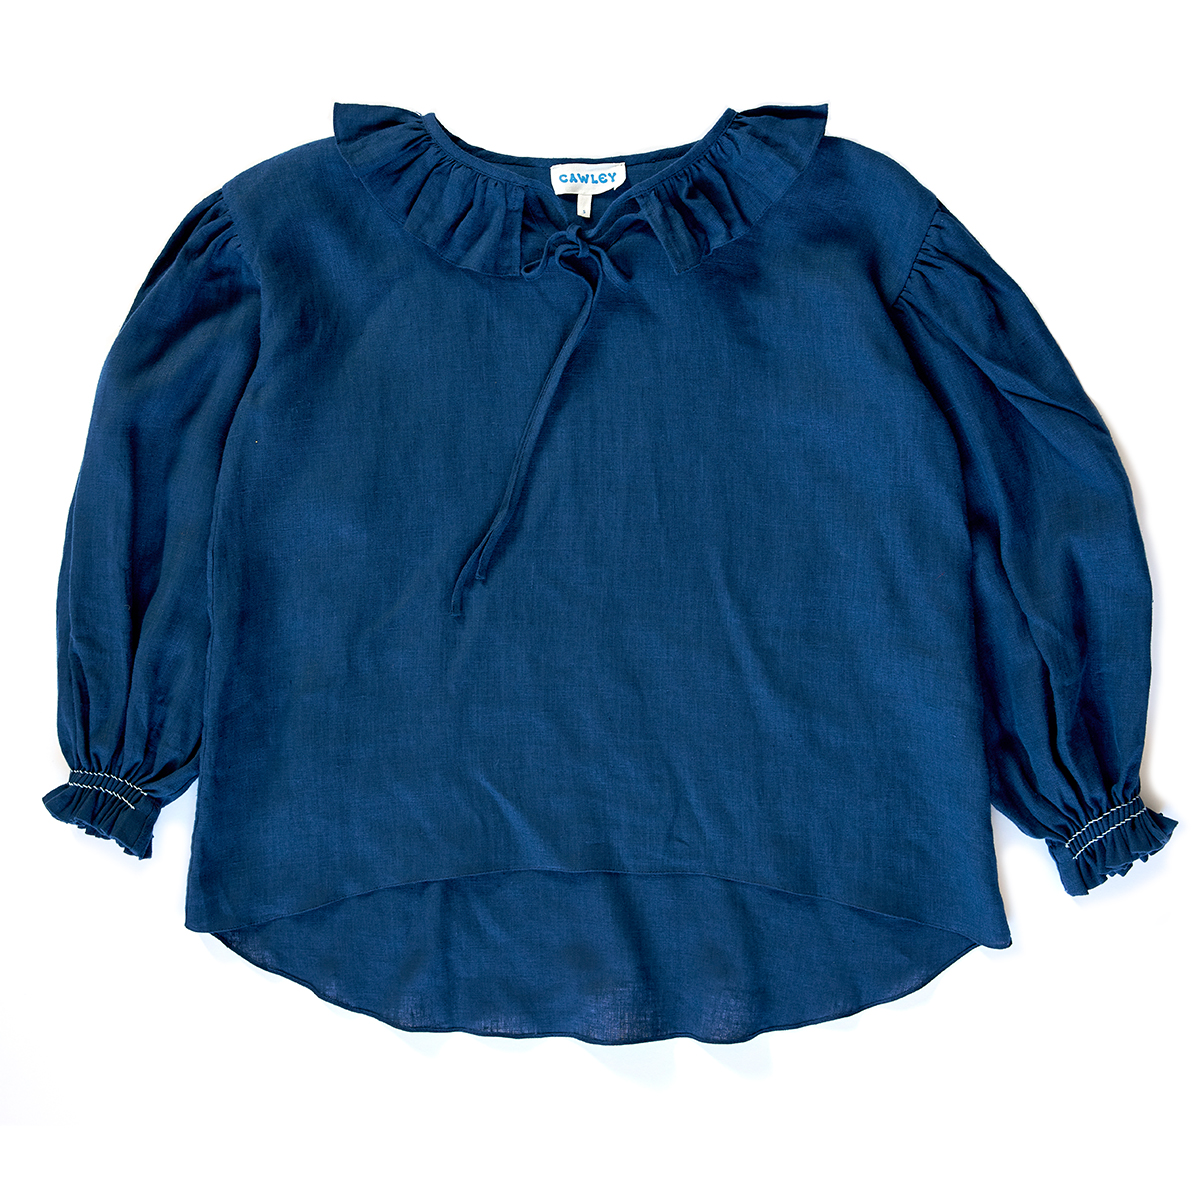 Smocked navy linen blouse by Cawley Studio